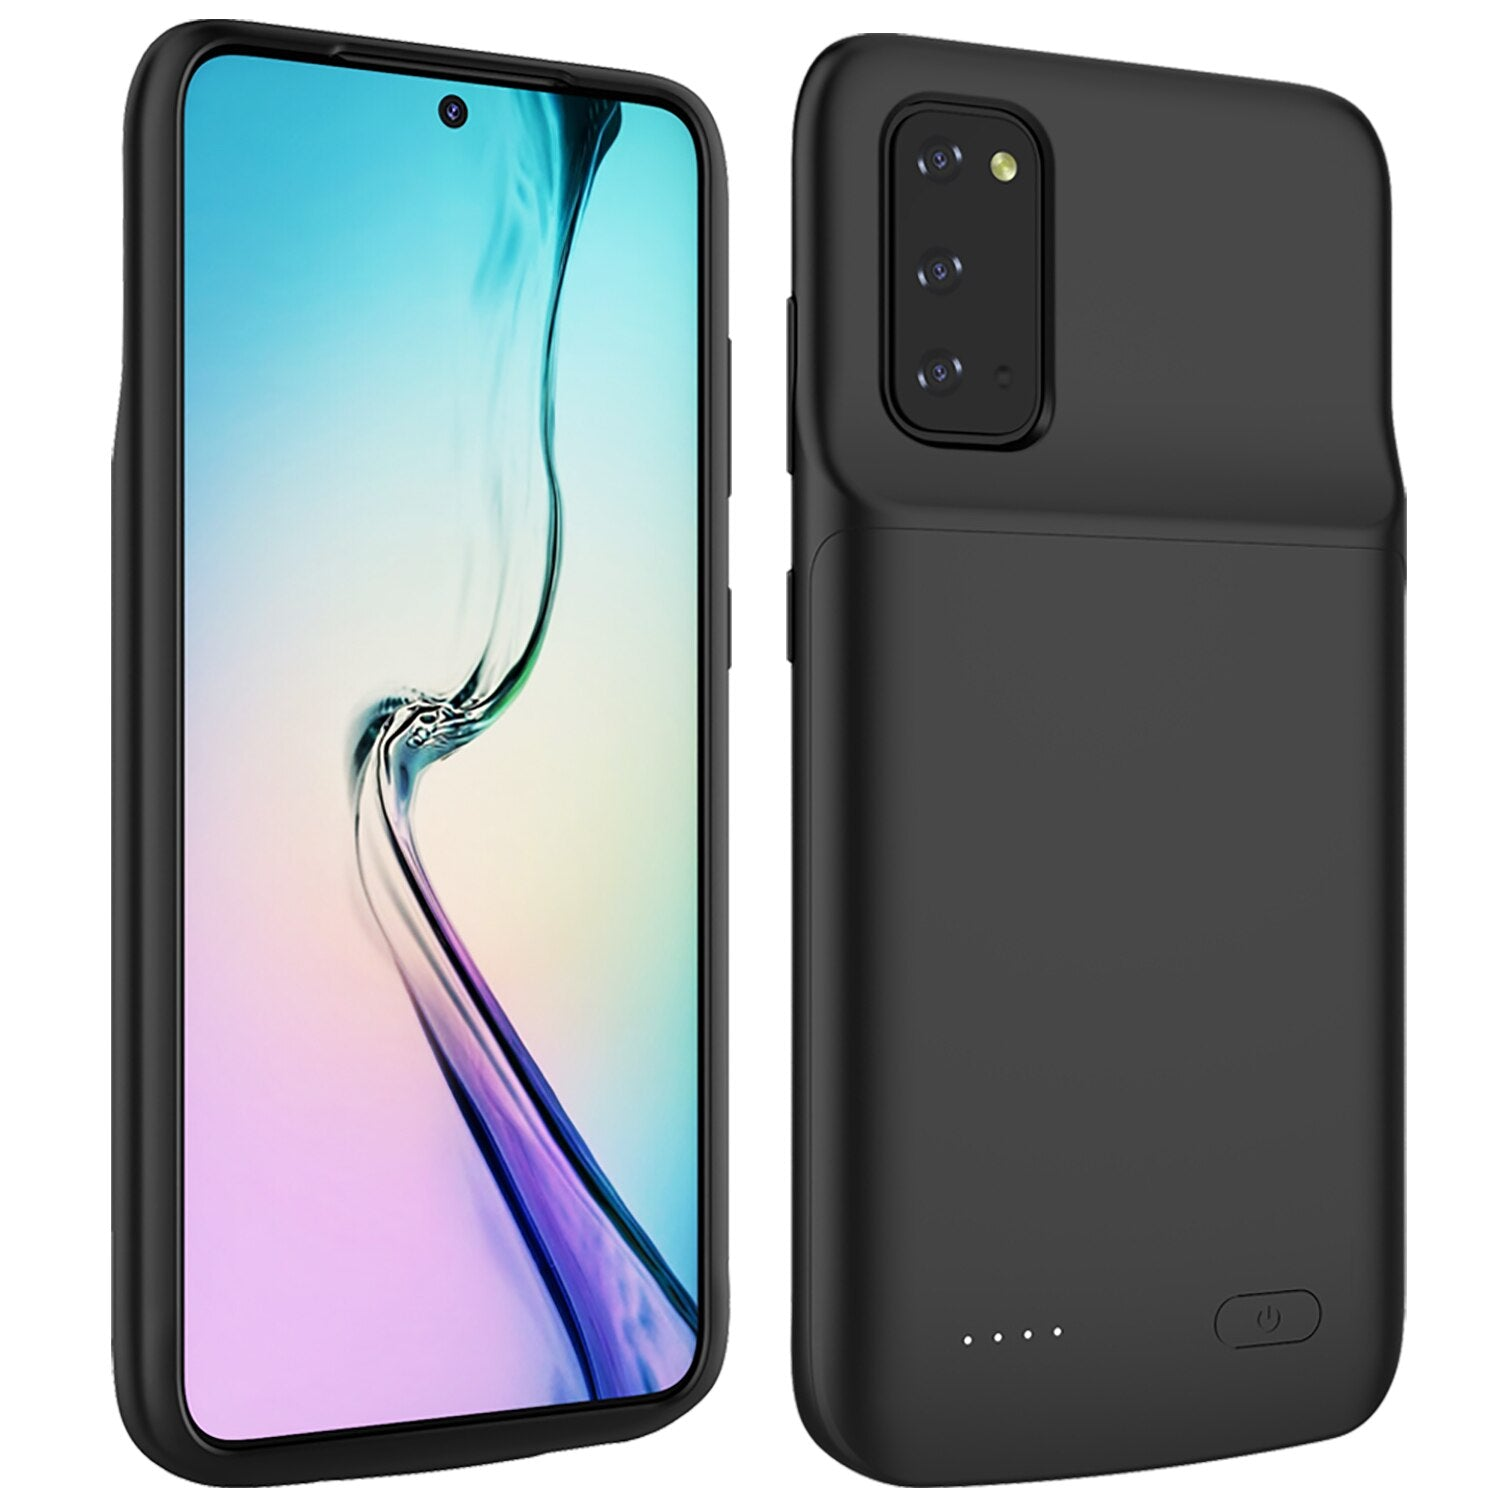 Samsung Galaxy S20 Plus Charging Case Battery Cover 6000mAh Rechargeable Portable Extended Charge Backup Charger Power Bank Good Quality